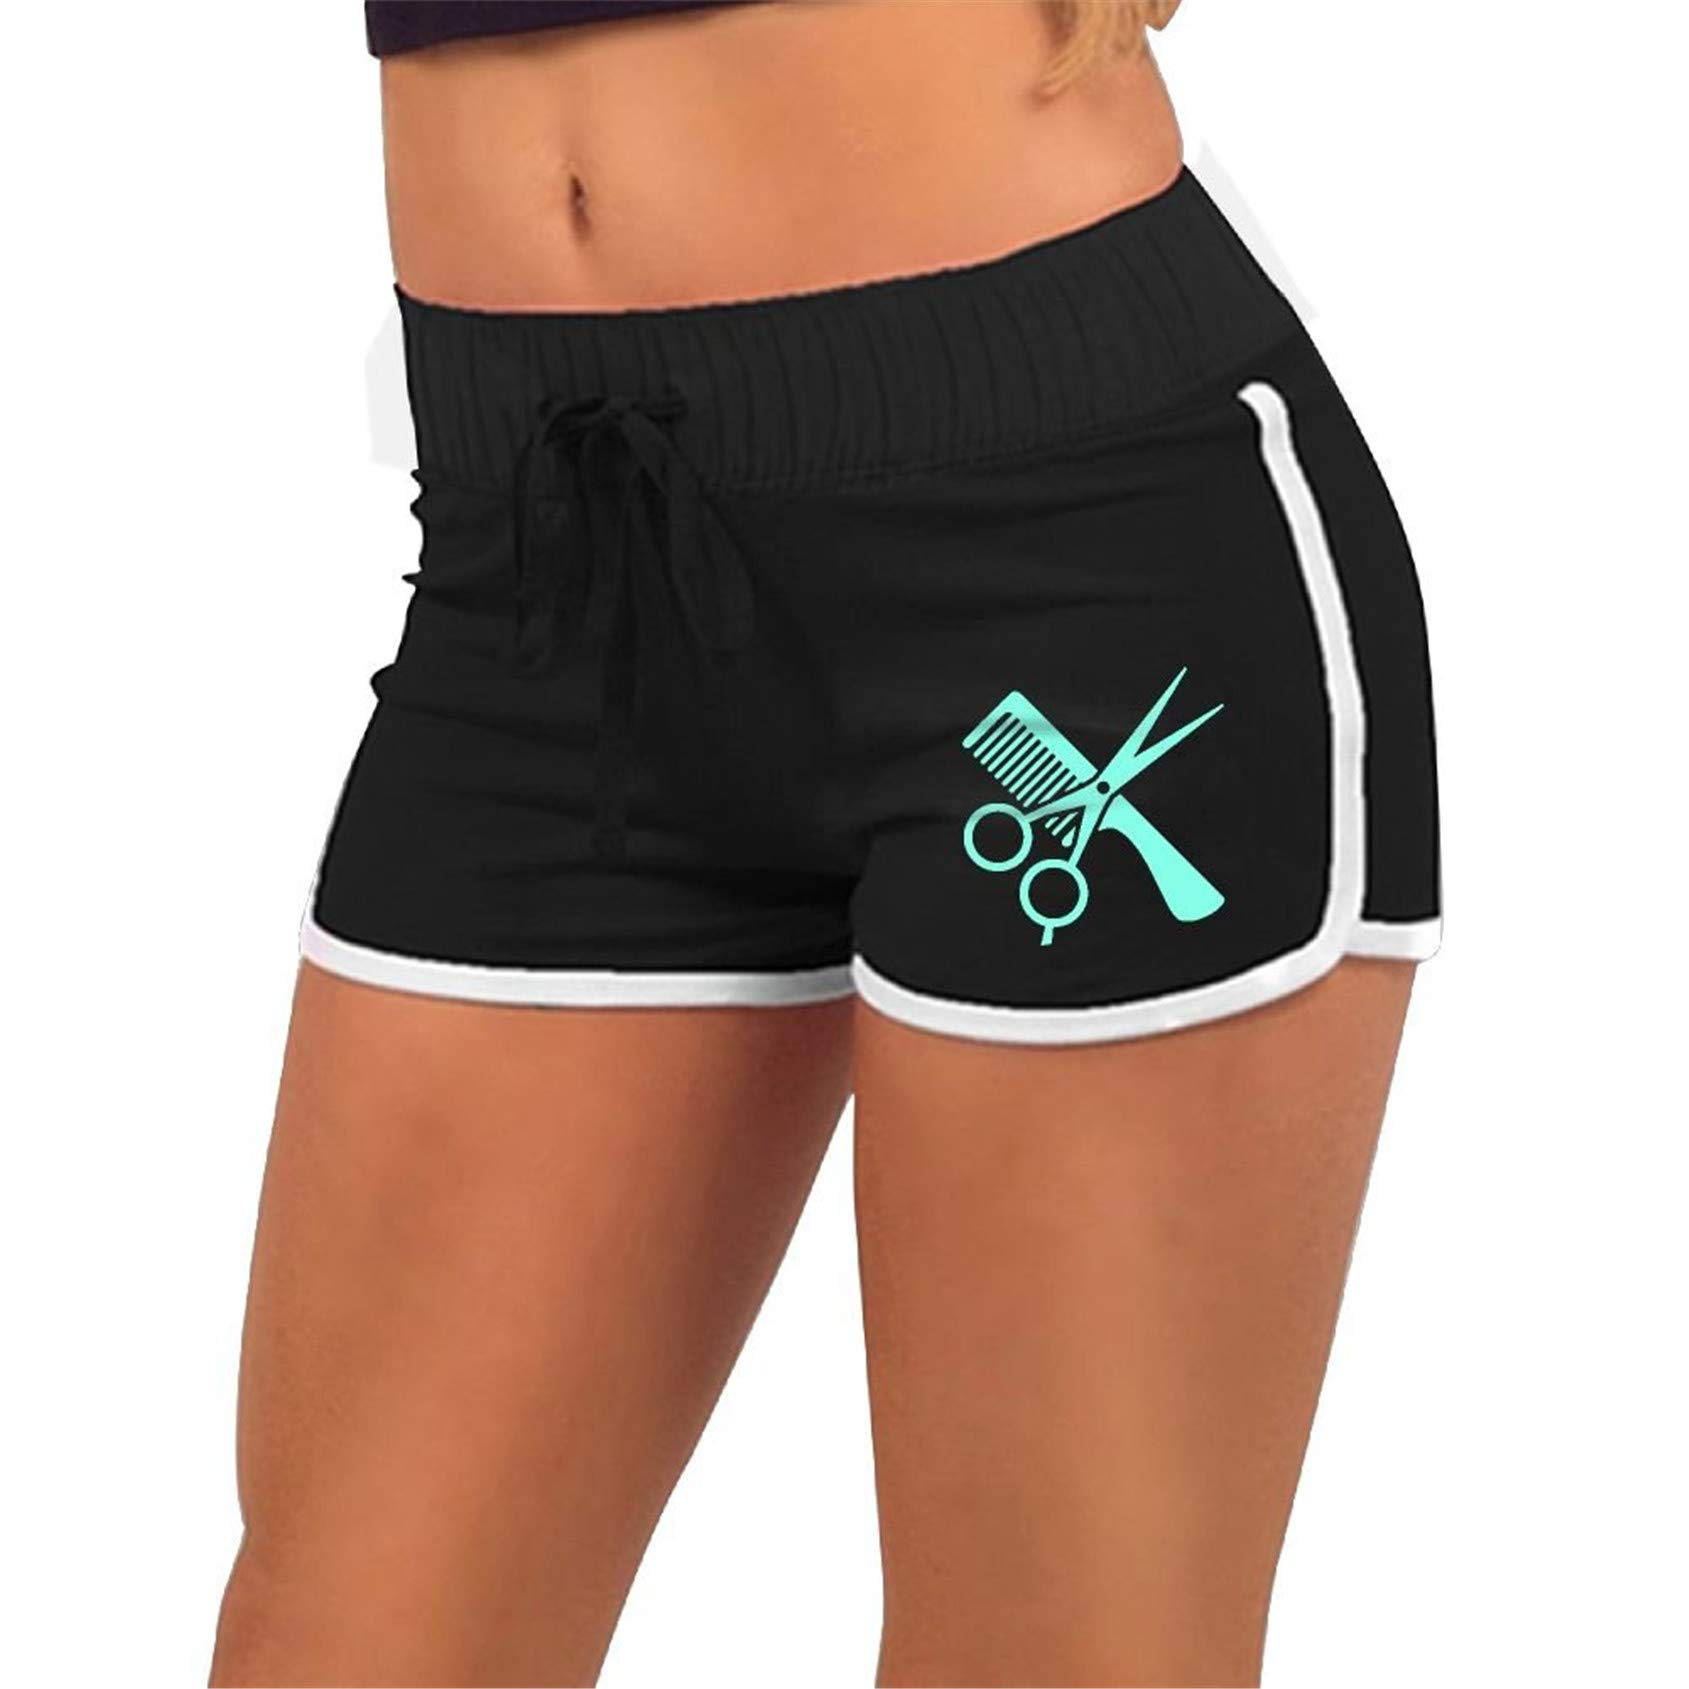 Love Clipart Hair Stylist,Running Active Shorts Pants with,Athletic Elastic Waist Womens Sports Shorts